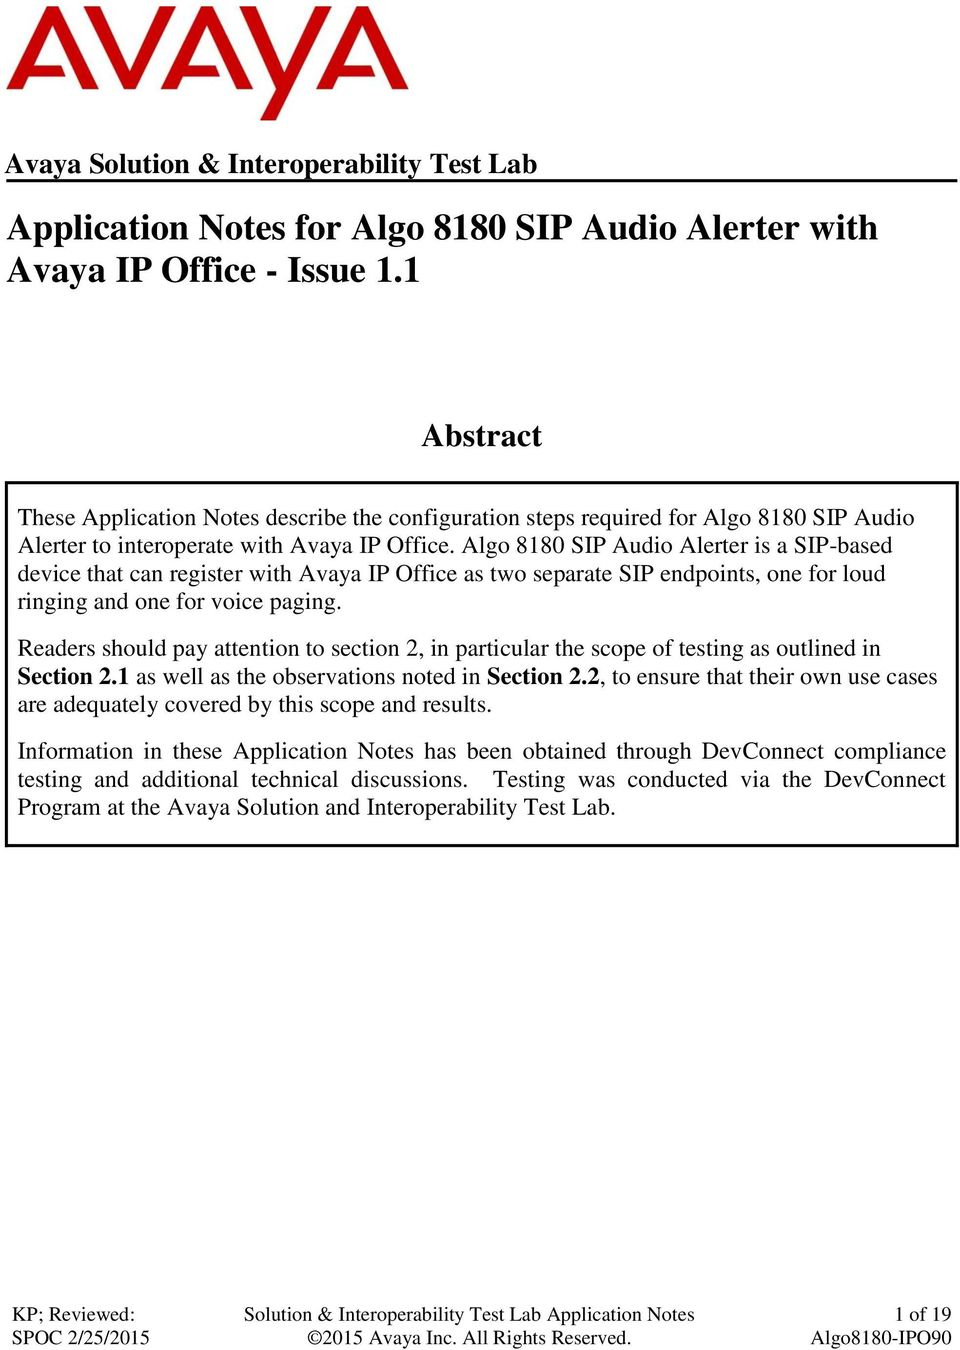 Algo 8180 SIP Audio Alerter is a SIP-based device that can register with Avaya IP Office as two separate SIP endpoints, one for loud ringing and one for voice paging.